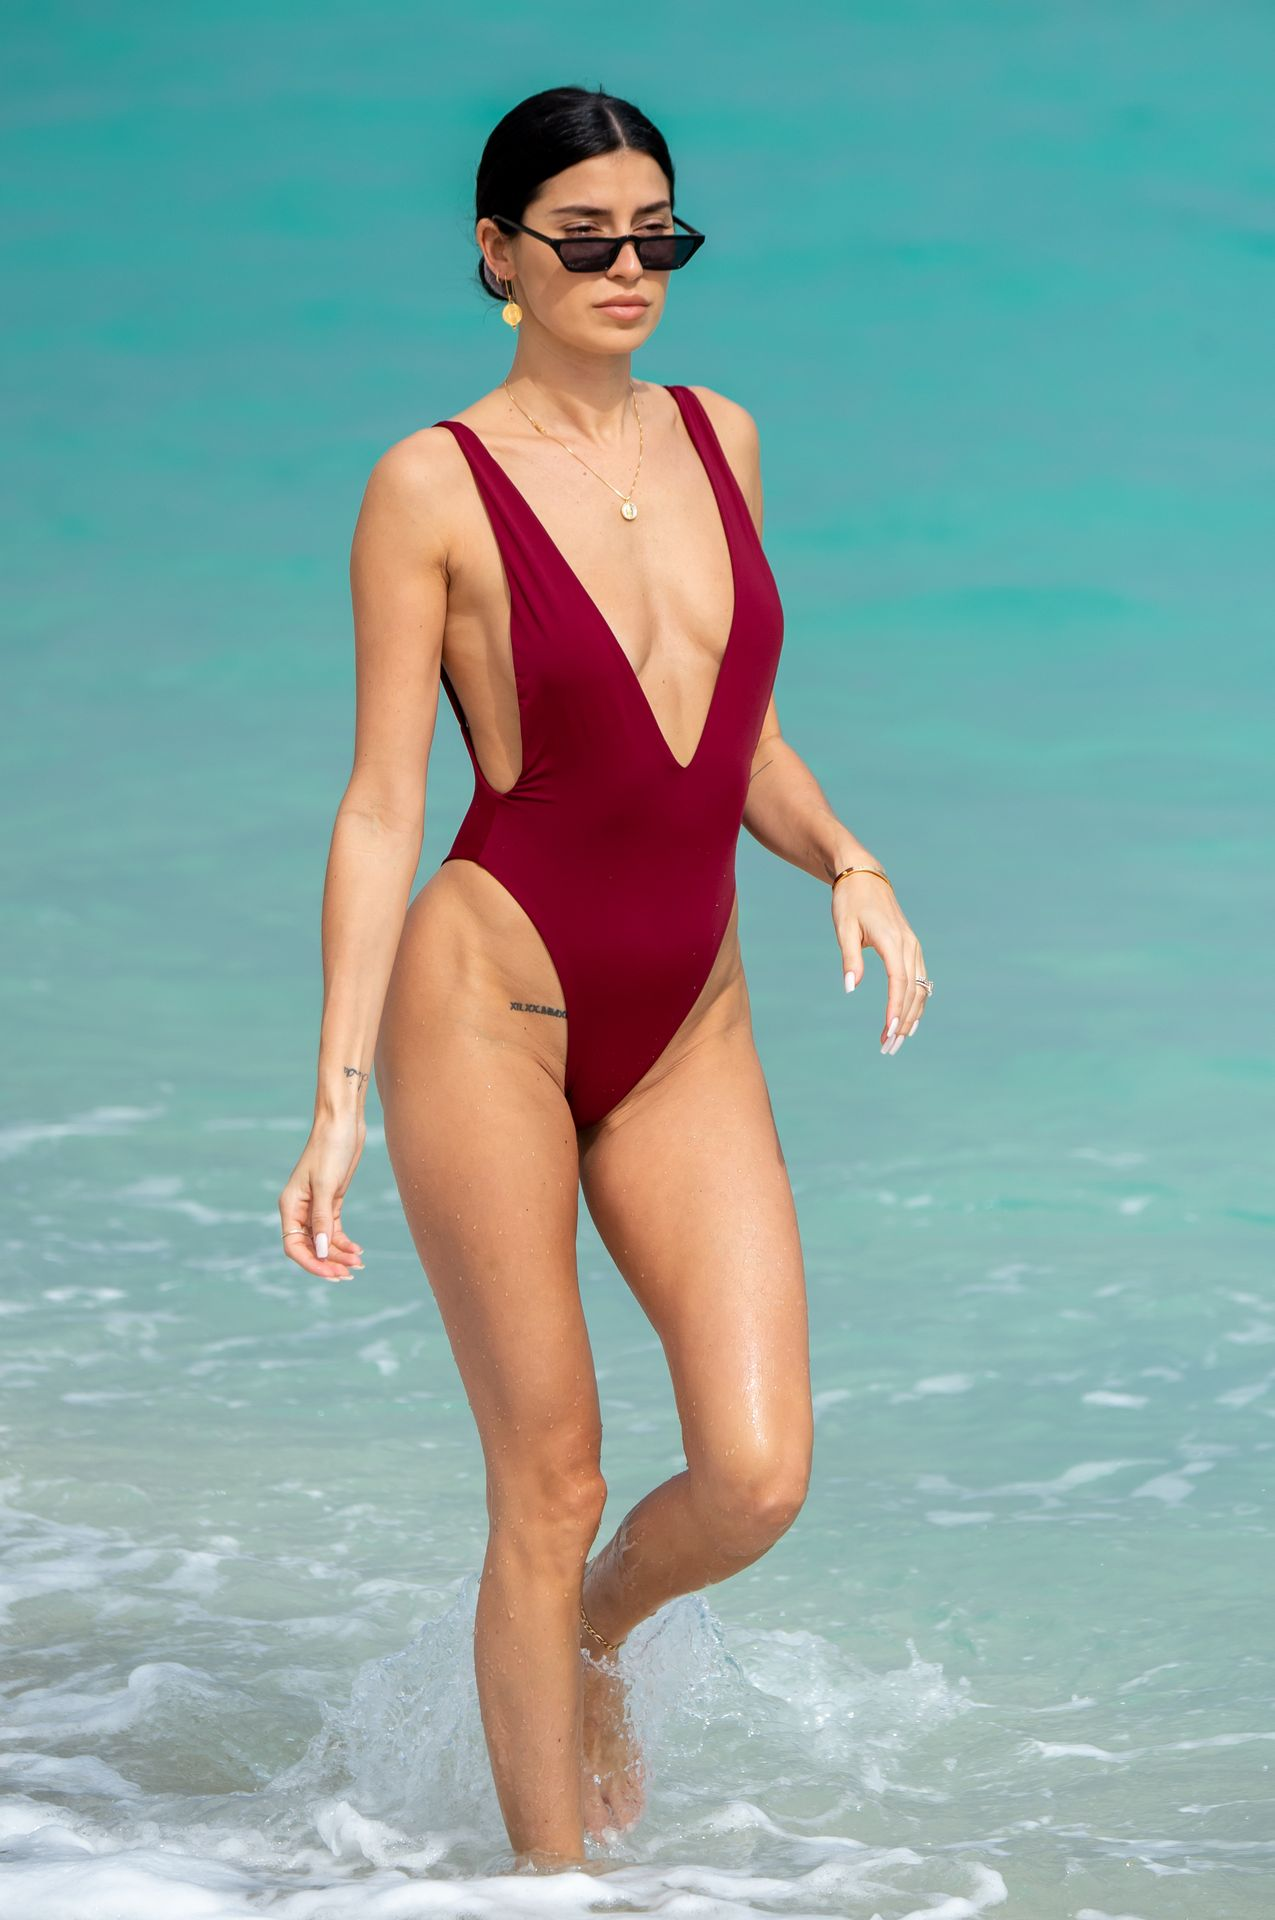 Nicole Williams Shows Off Her Amazing Curves In Miami 0026